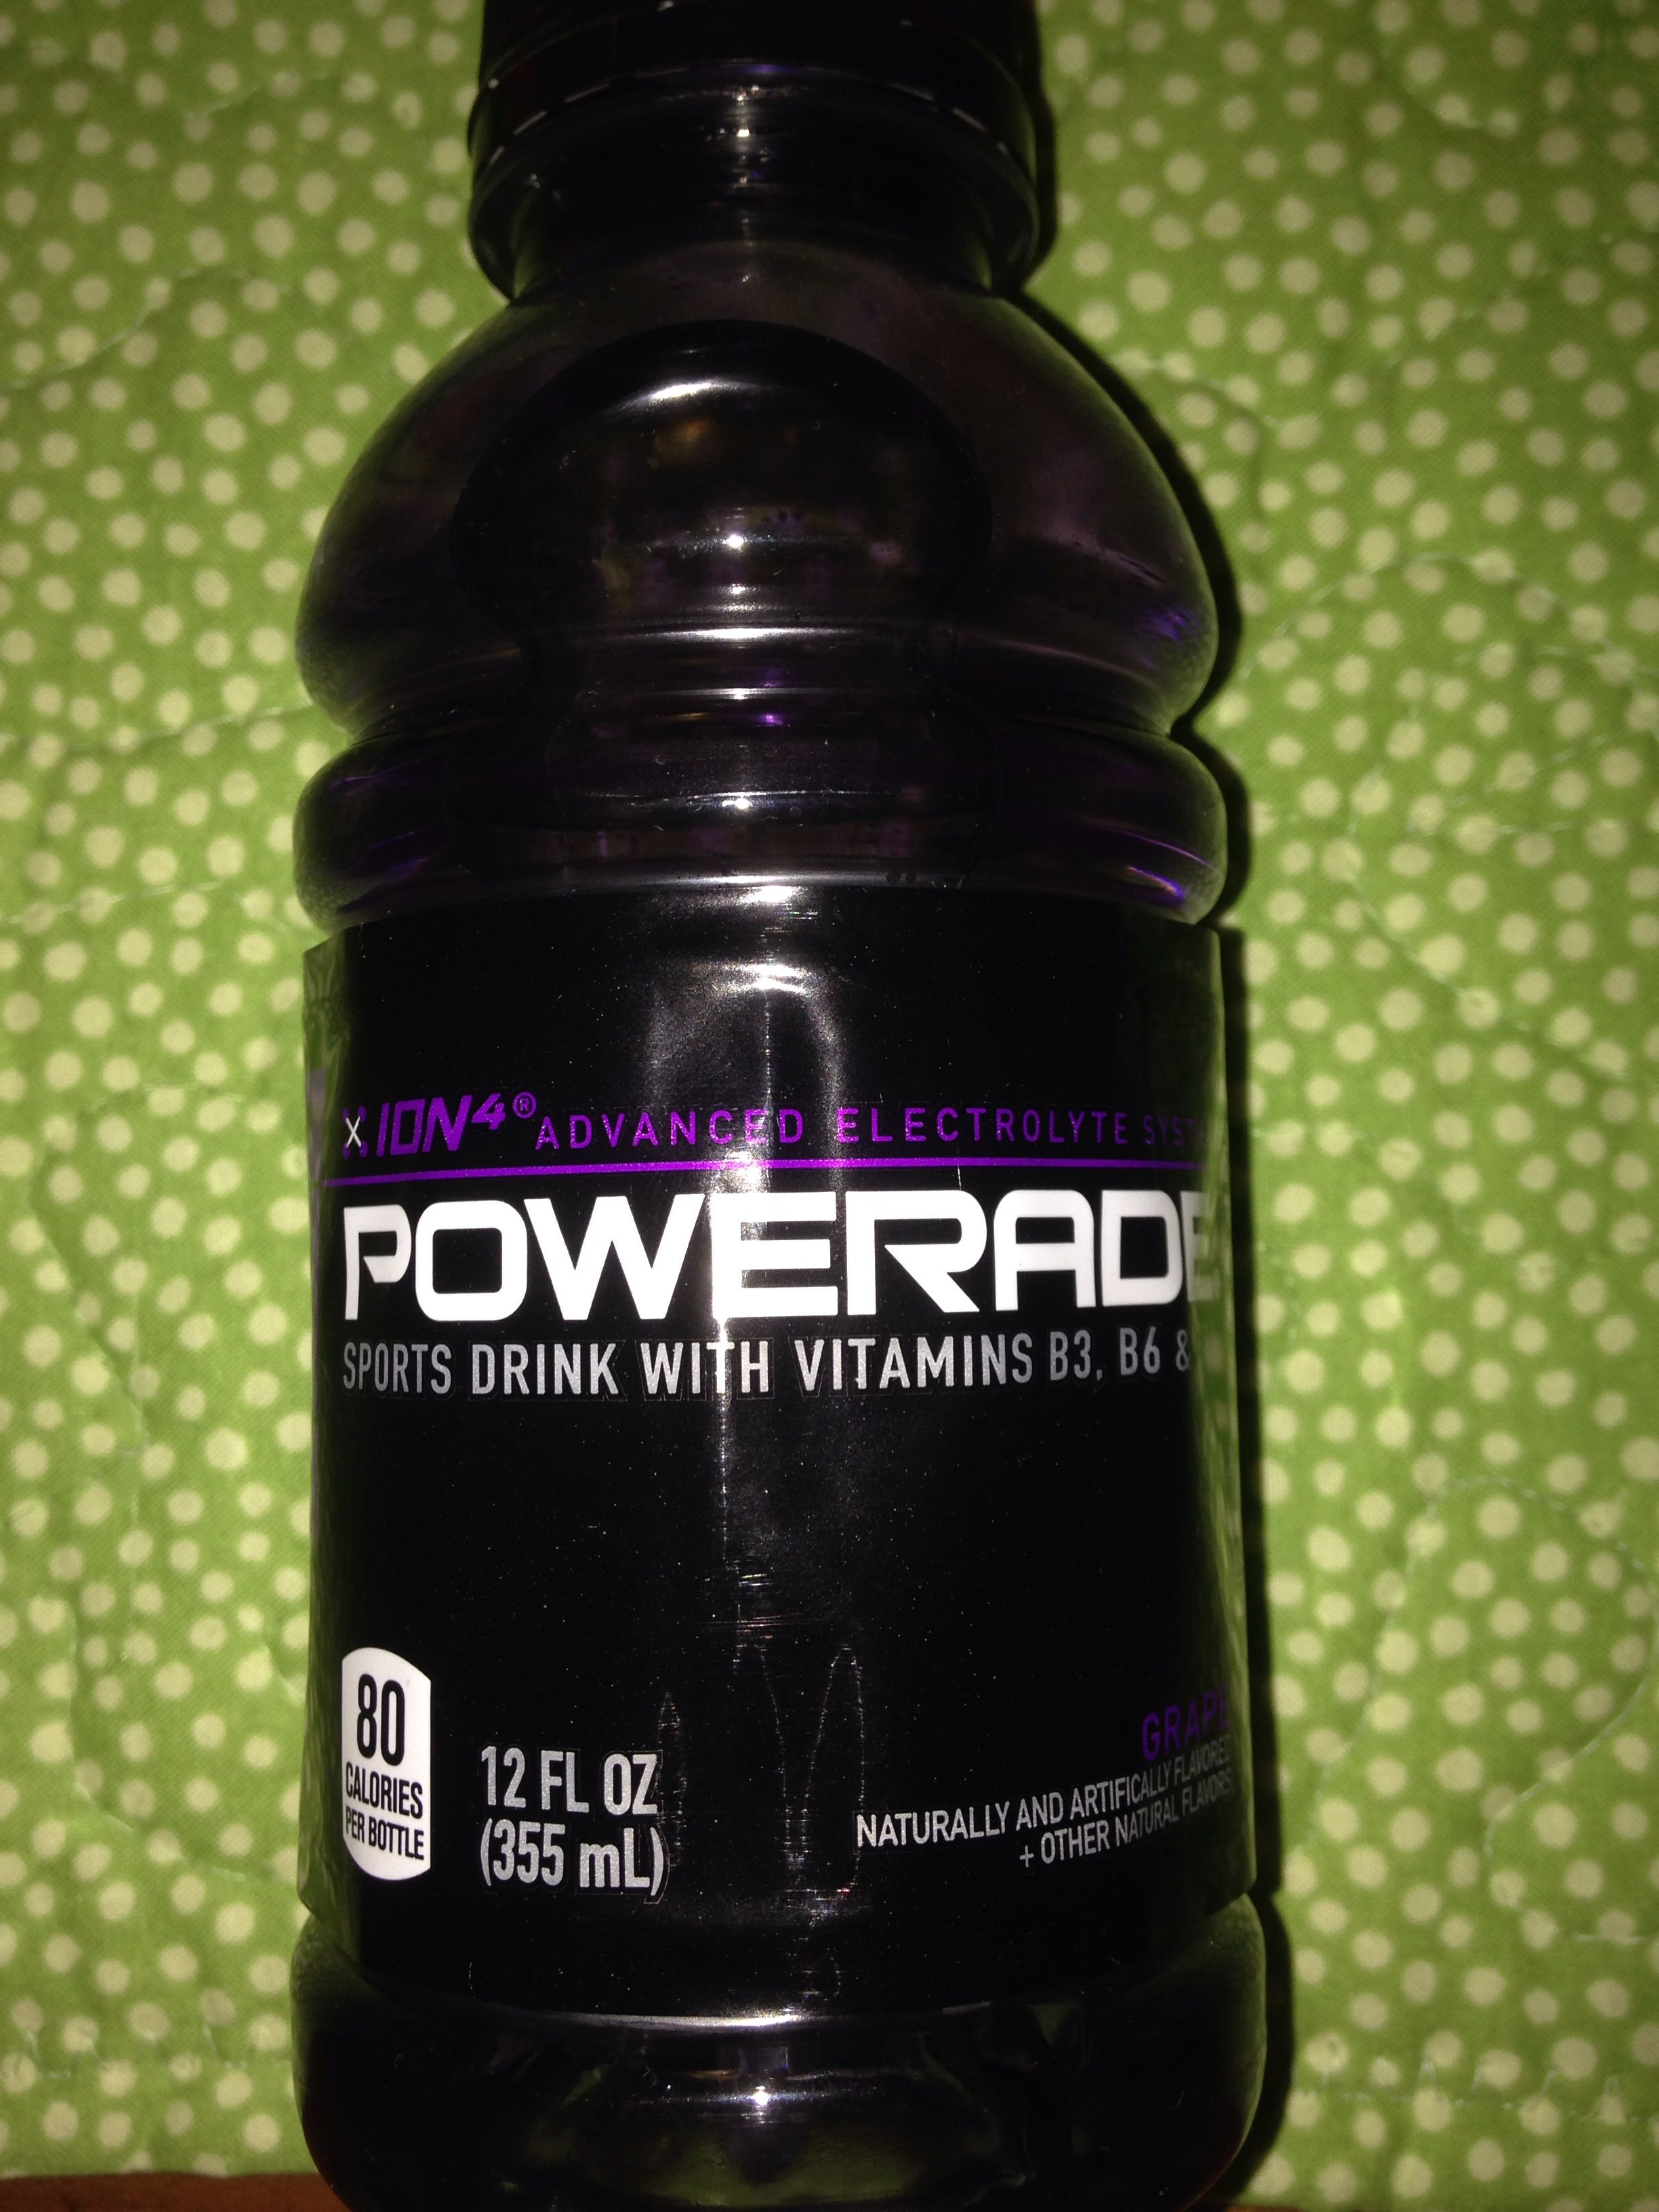 powerade   stuff to buy in 2018   pinterest   drinks, food and great